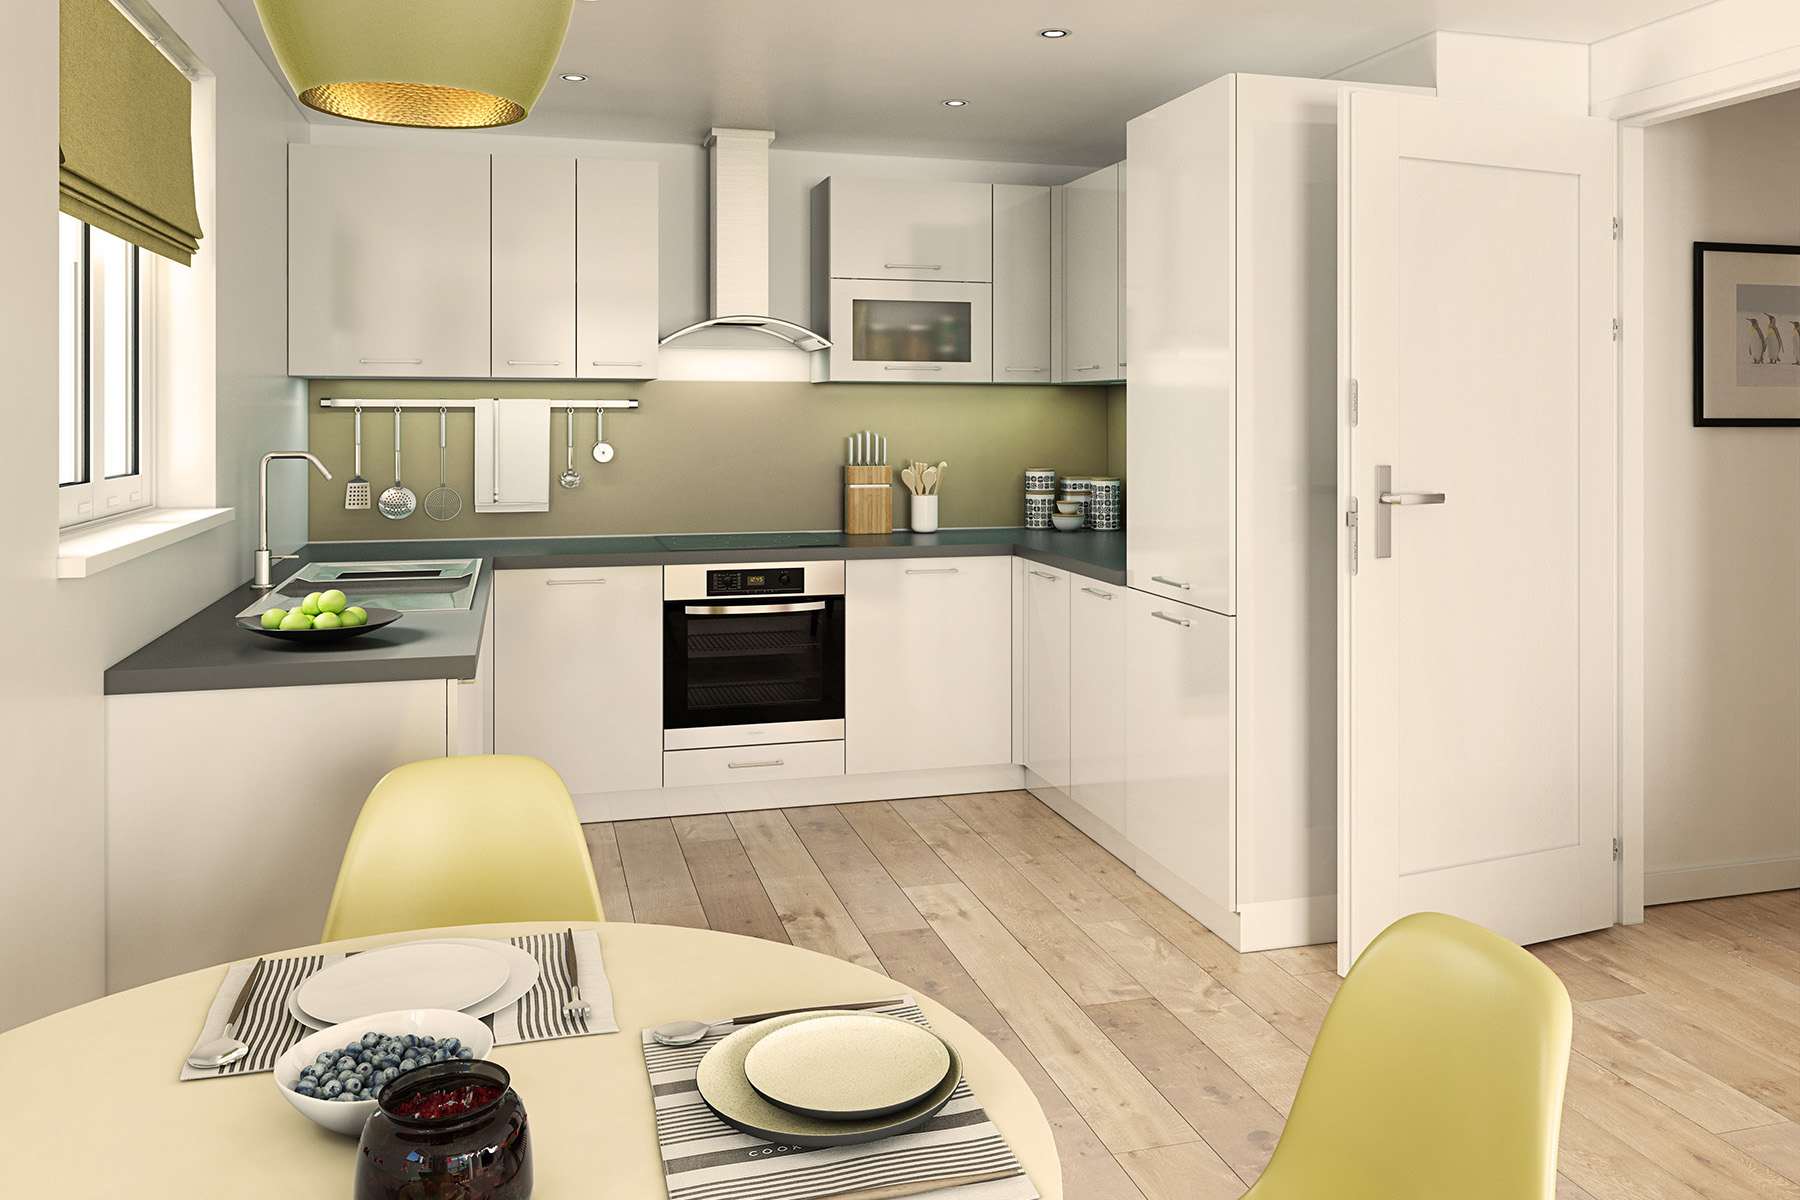 Generic_Type2_Kitchen